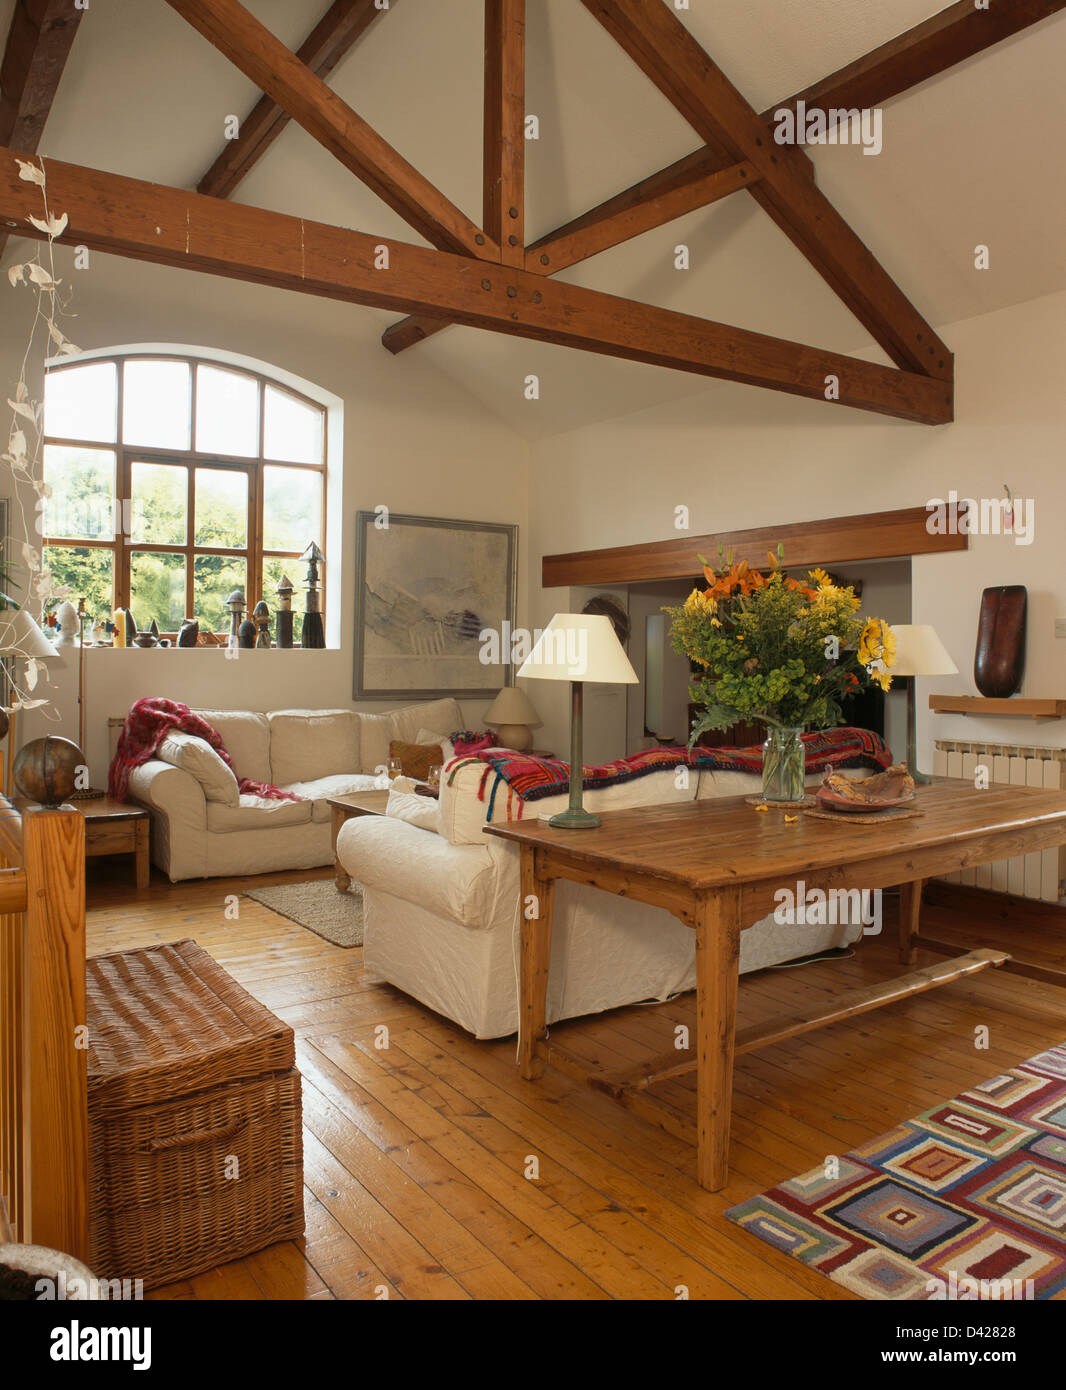 Reclaimed Wood Table And Pine Flooring With White Sofas In Living Room Wooden Beams On Apex Ceiling